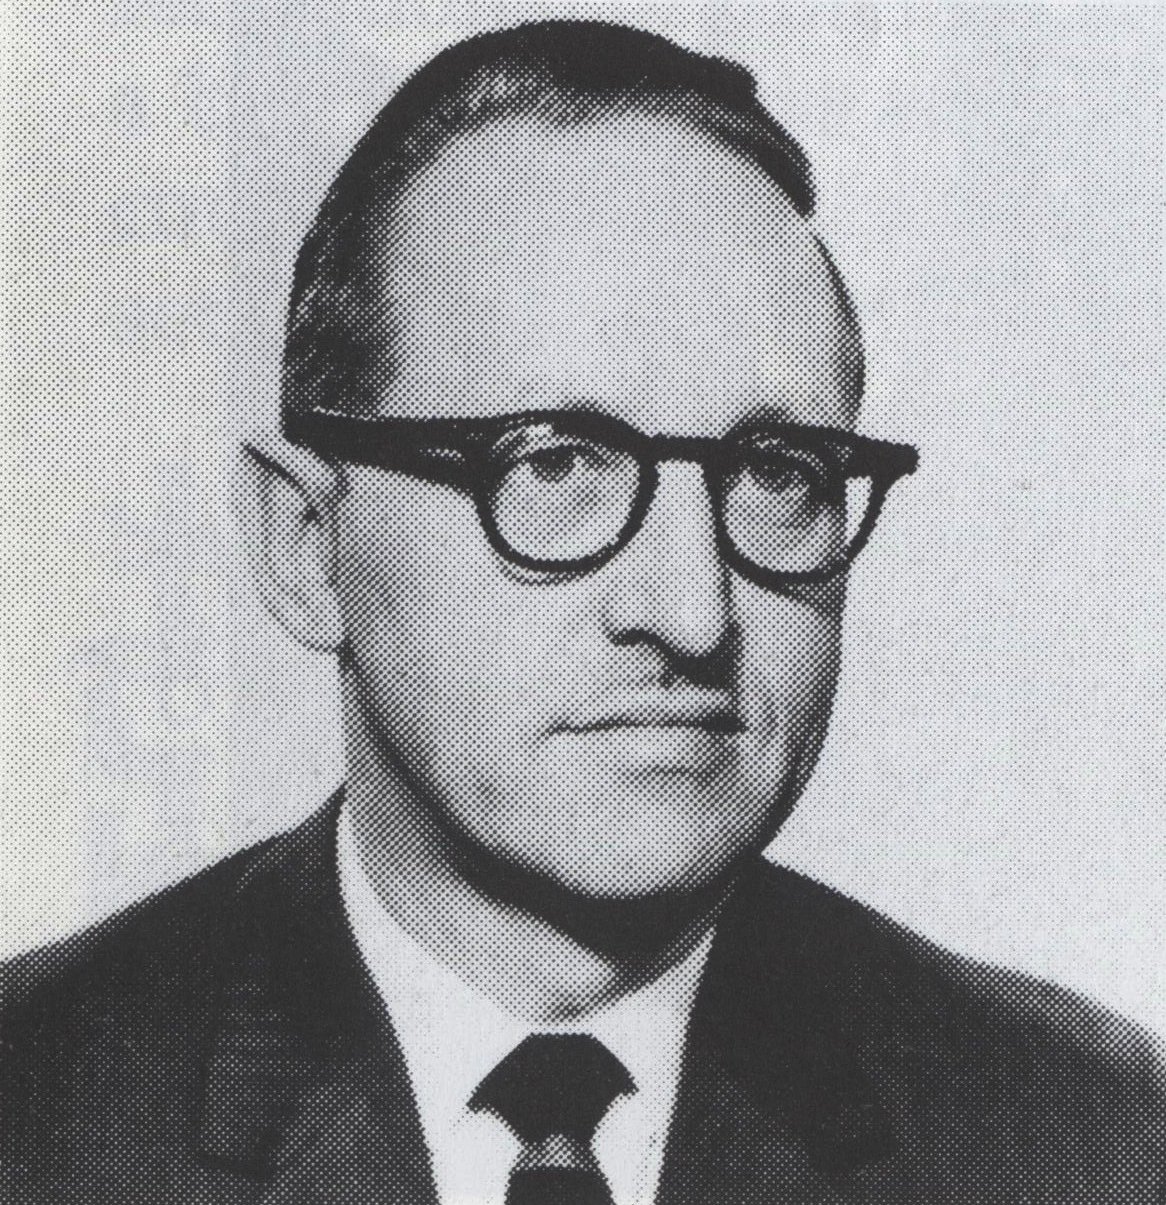 old black and white photograph, 1950s of man with dark hair and glasses